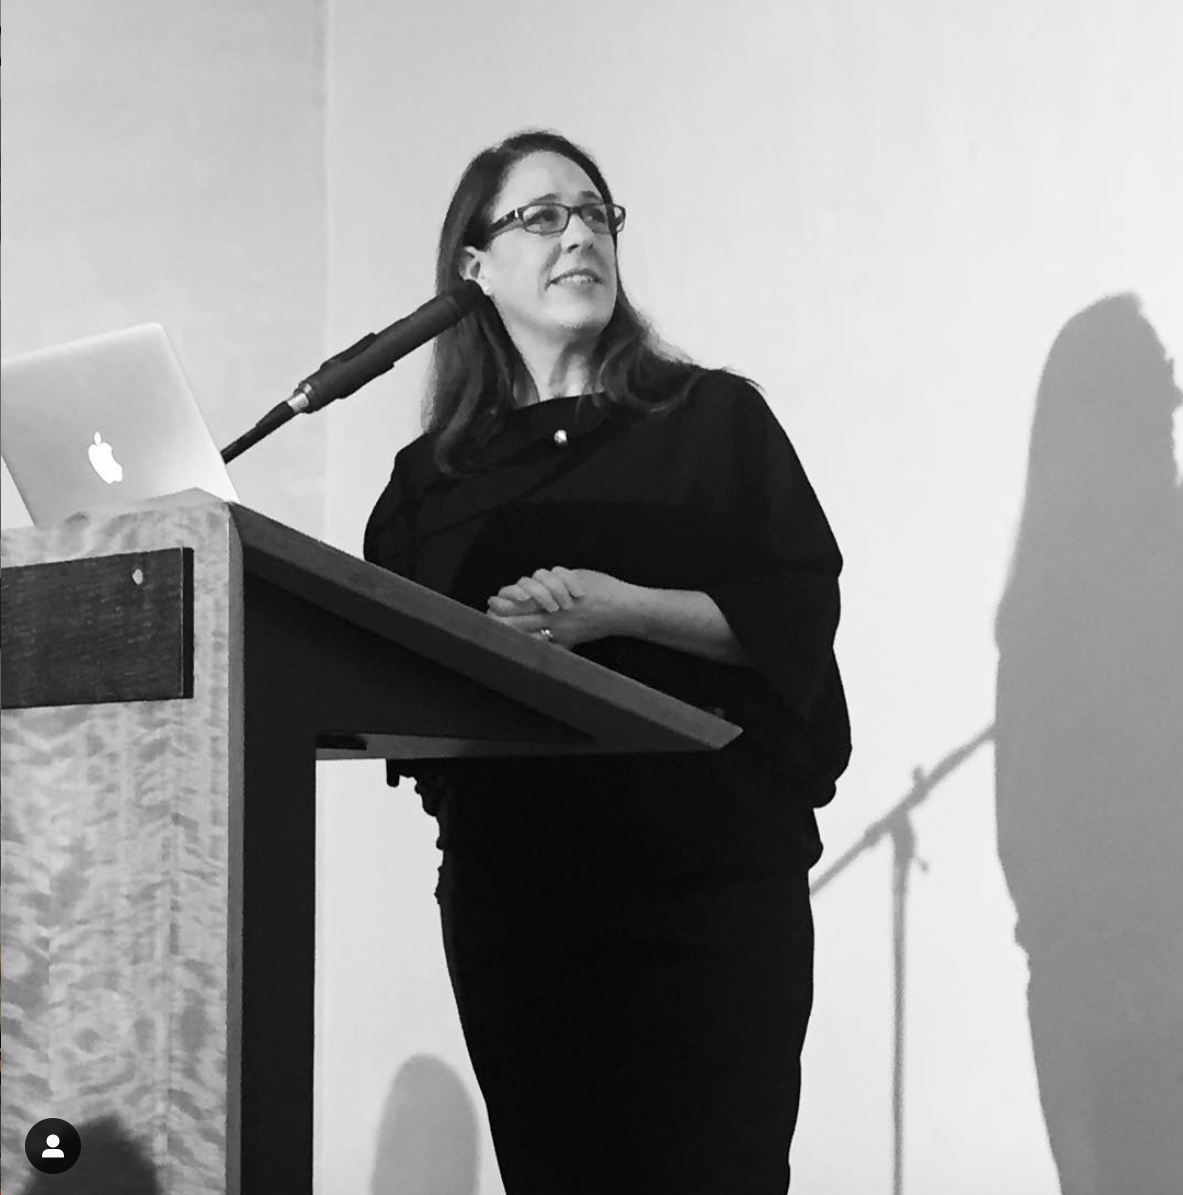 Jane Connory at the lectern, speaking at Design Tasmania's Women in Design conference. (Photo credit: Claire Beale)